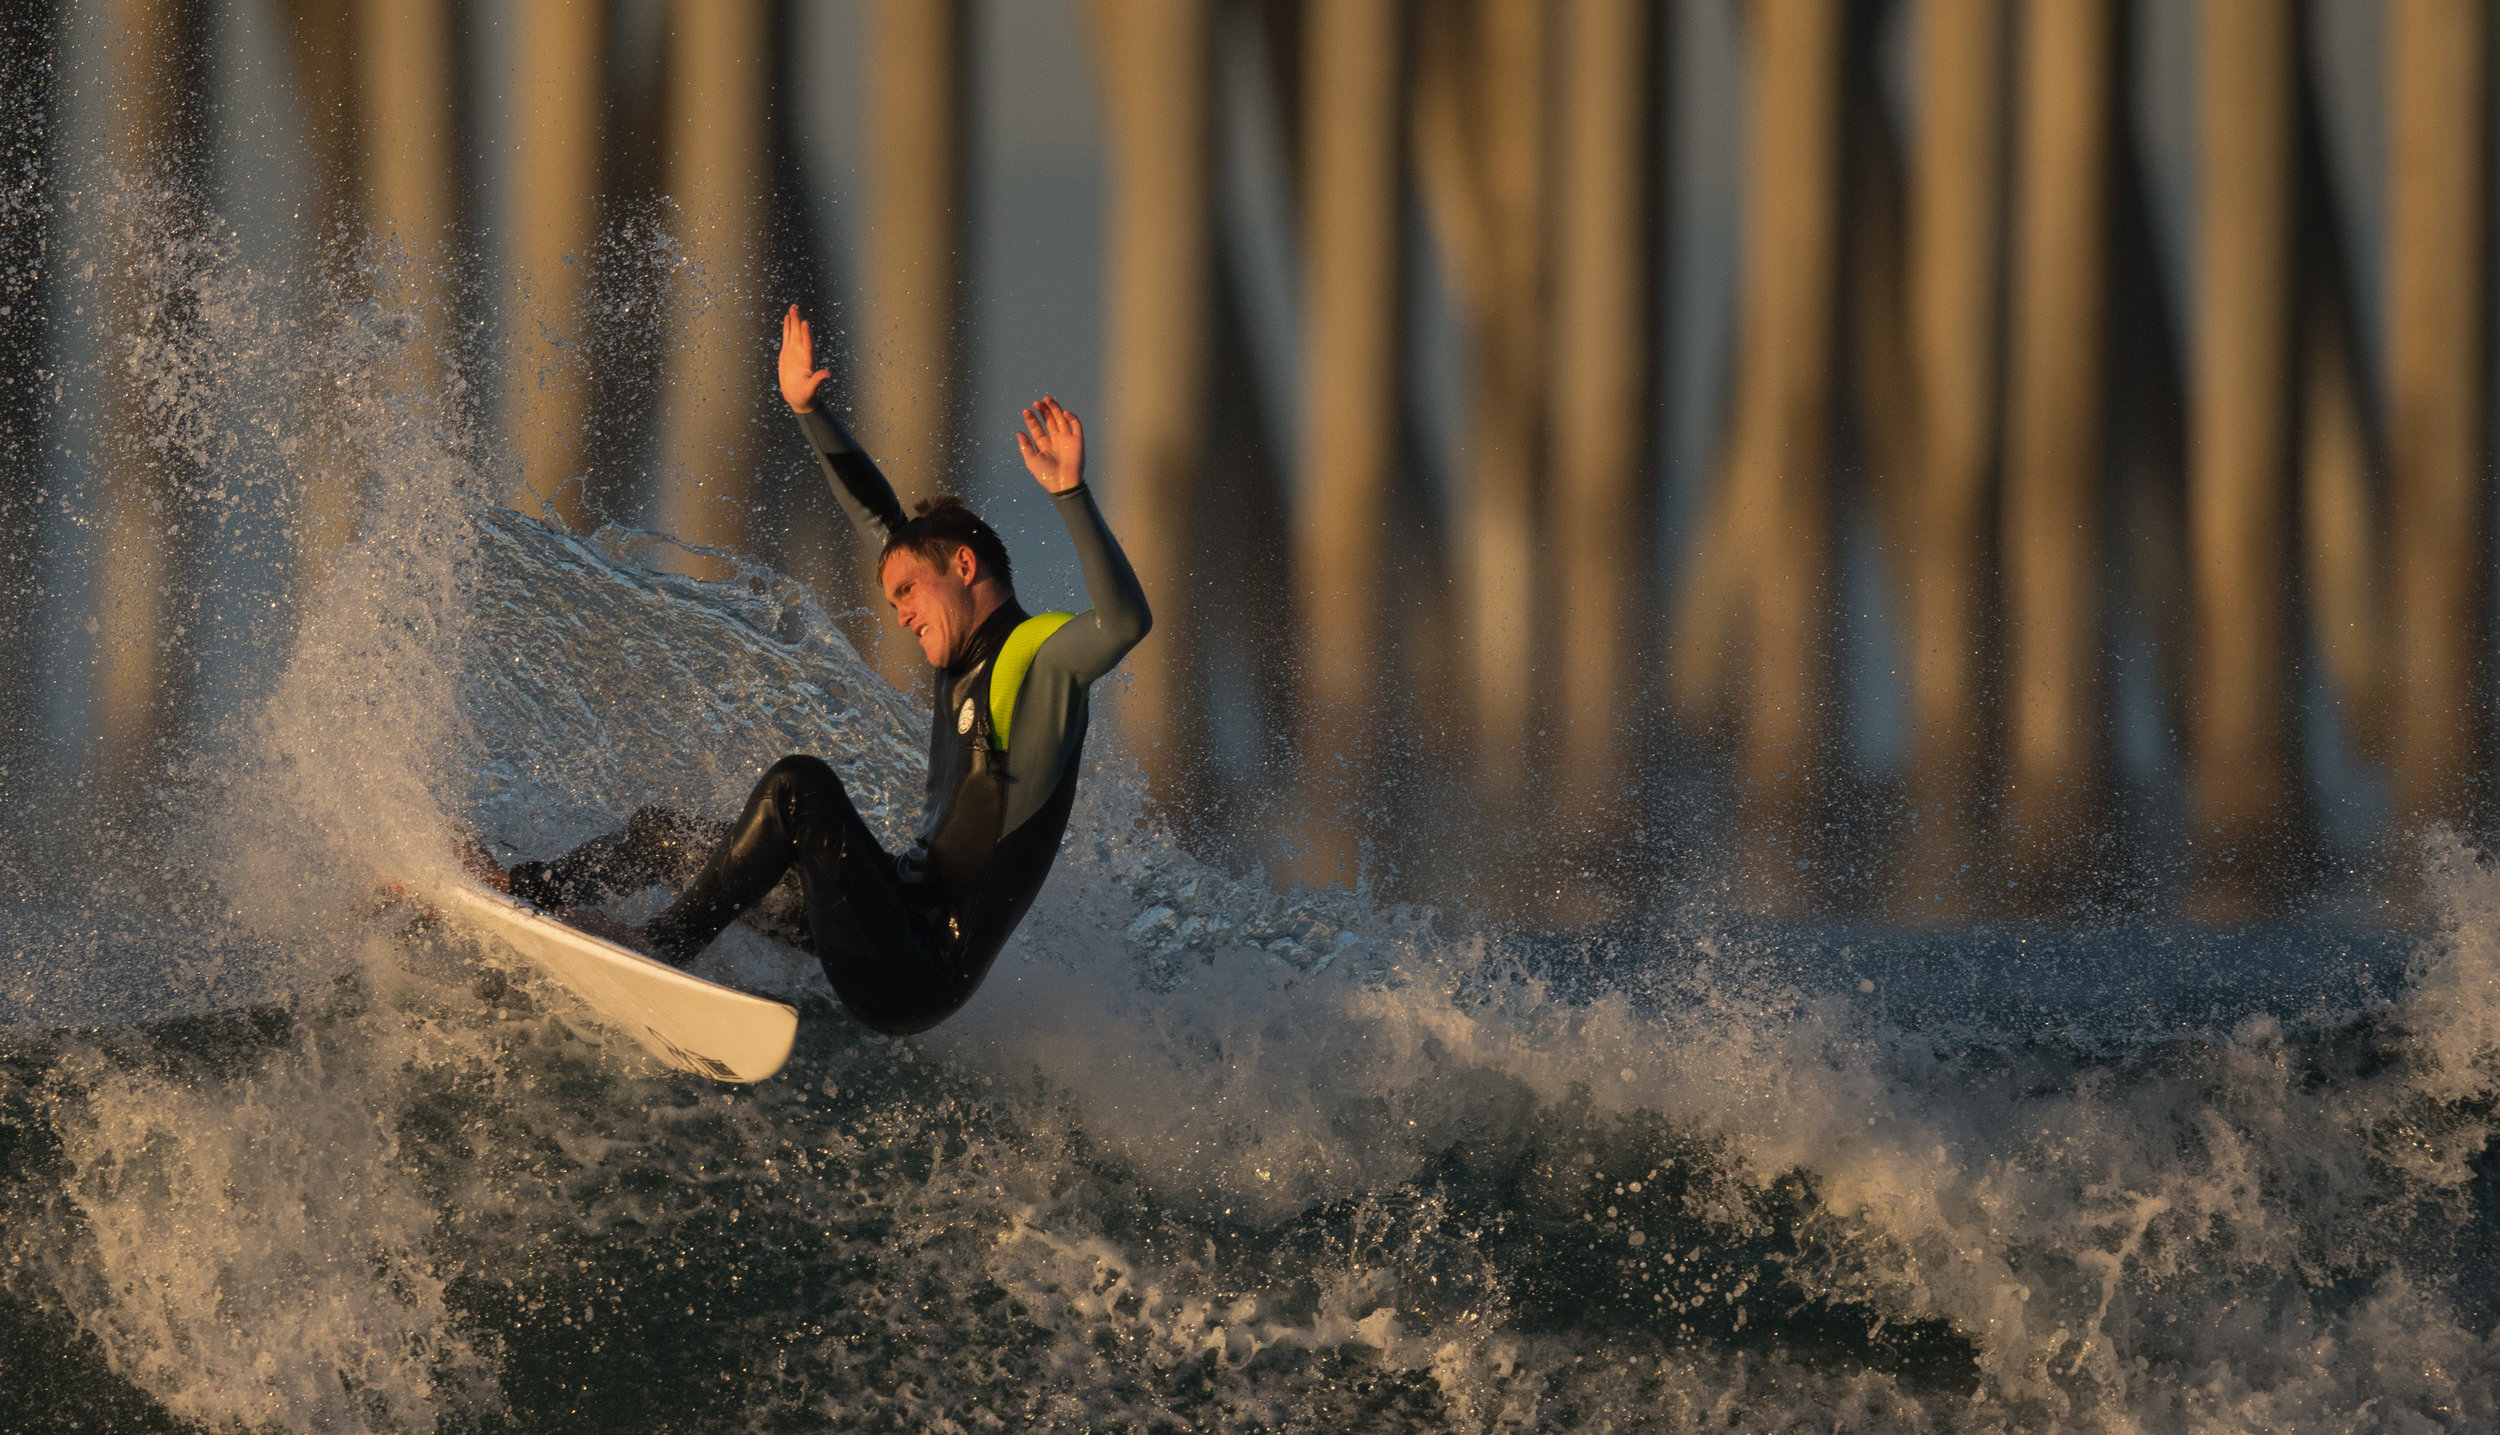 A surfer catches a swell early in the morning Thursday, Nov. 03, 2016 at the Huntington Beach Pier in Huntington, CA.